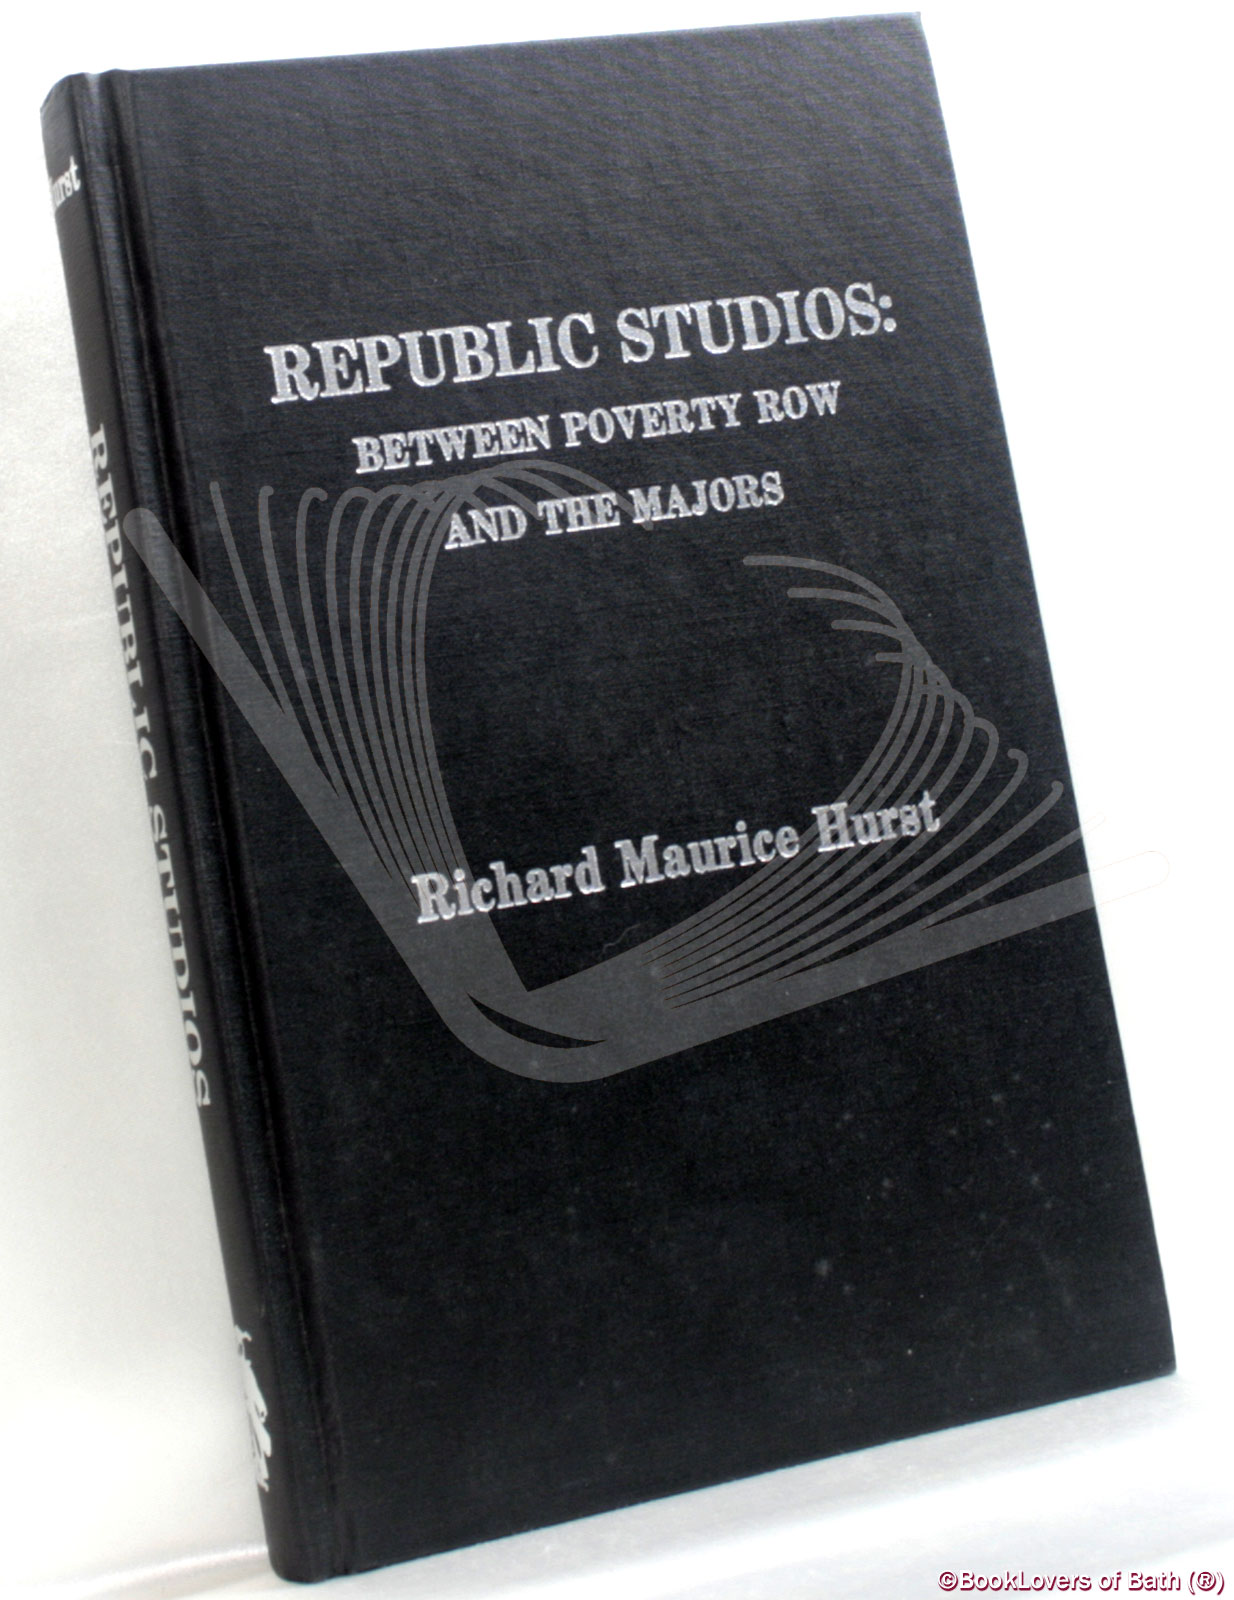 Republic Studios: Between Poverty Row and The Majors - Richard Maurice Hurst